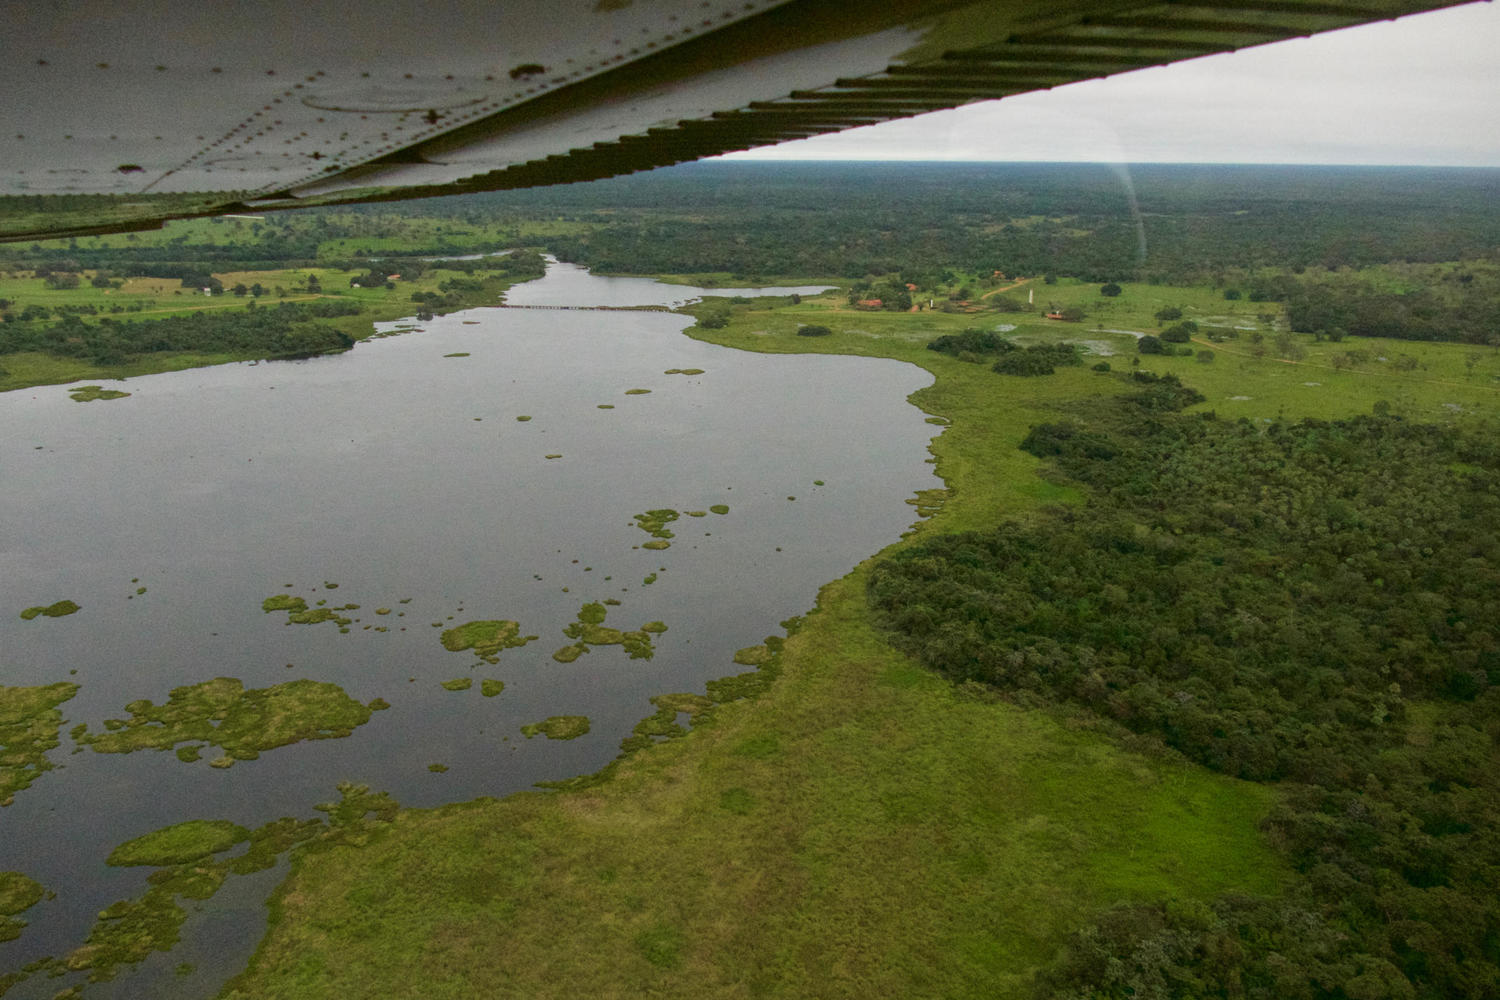 Flying over the watery Pantanal